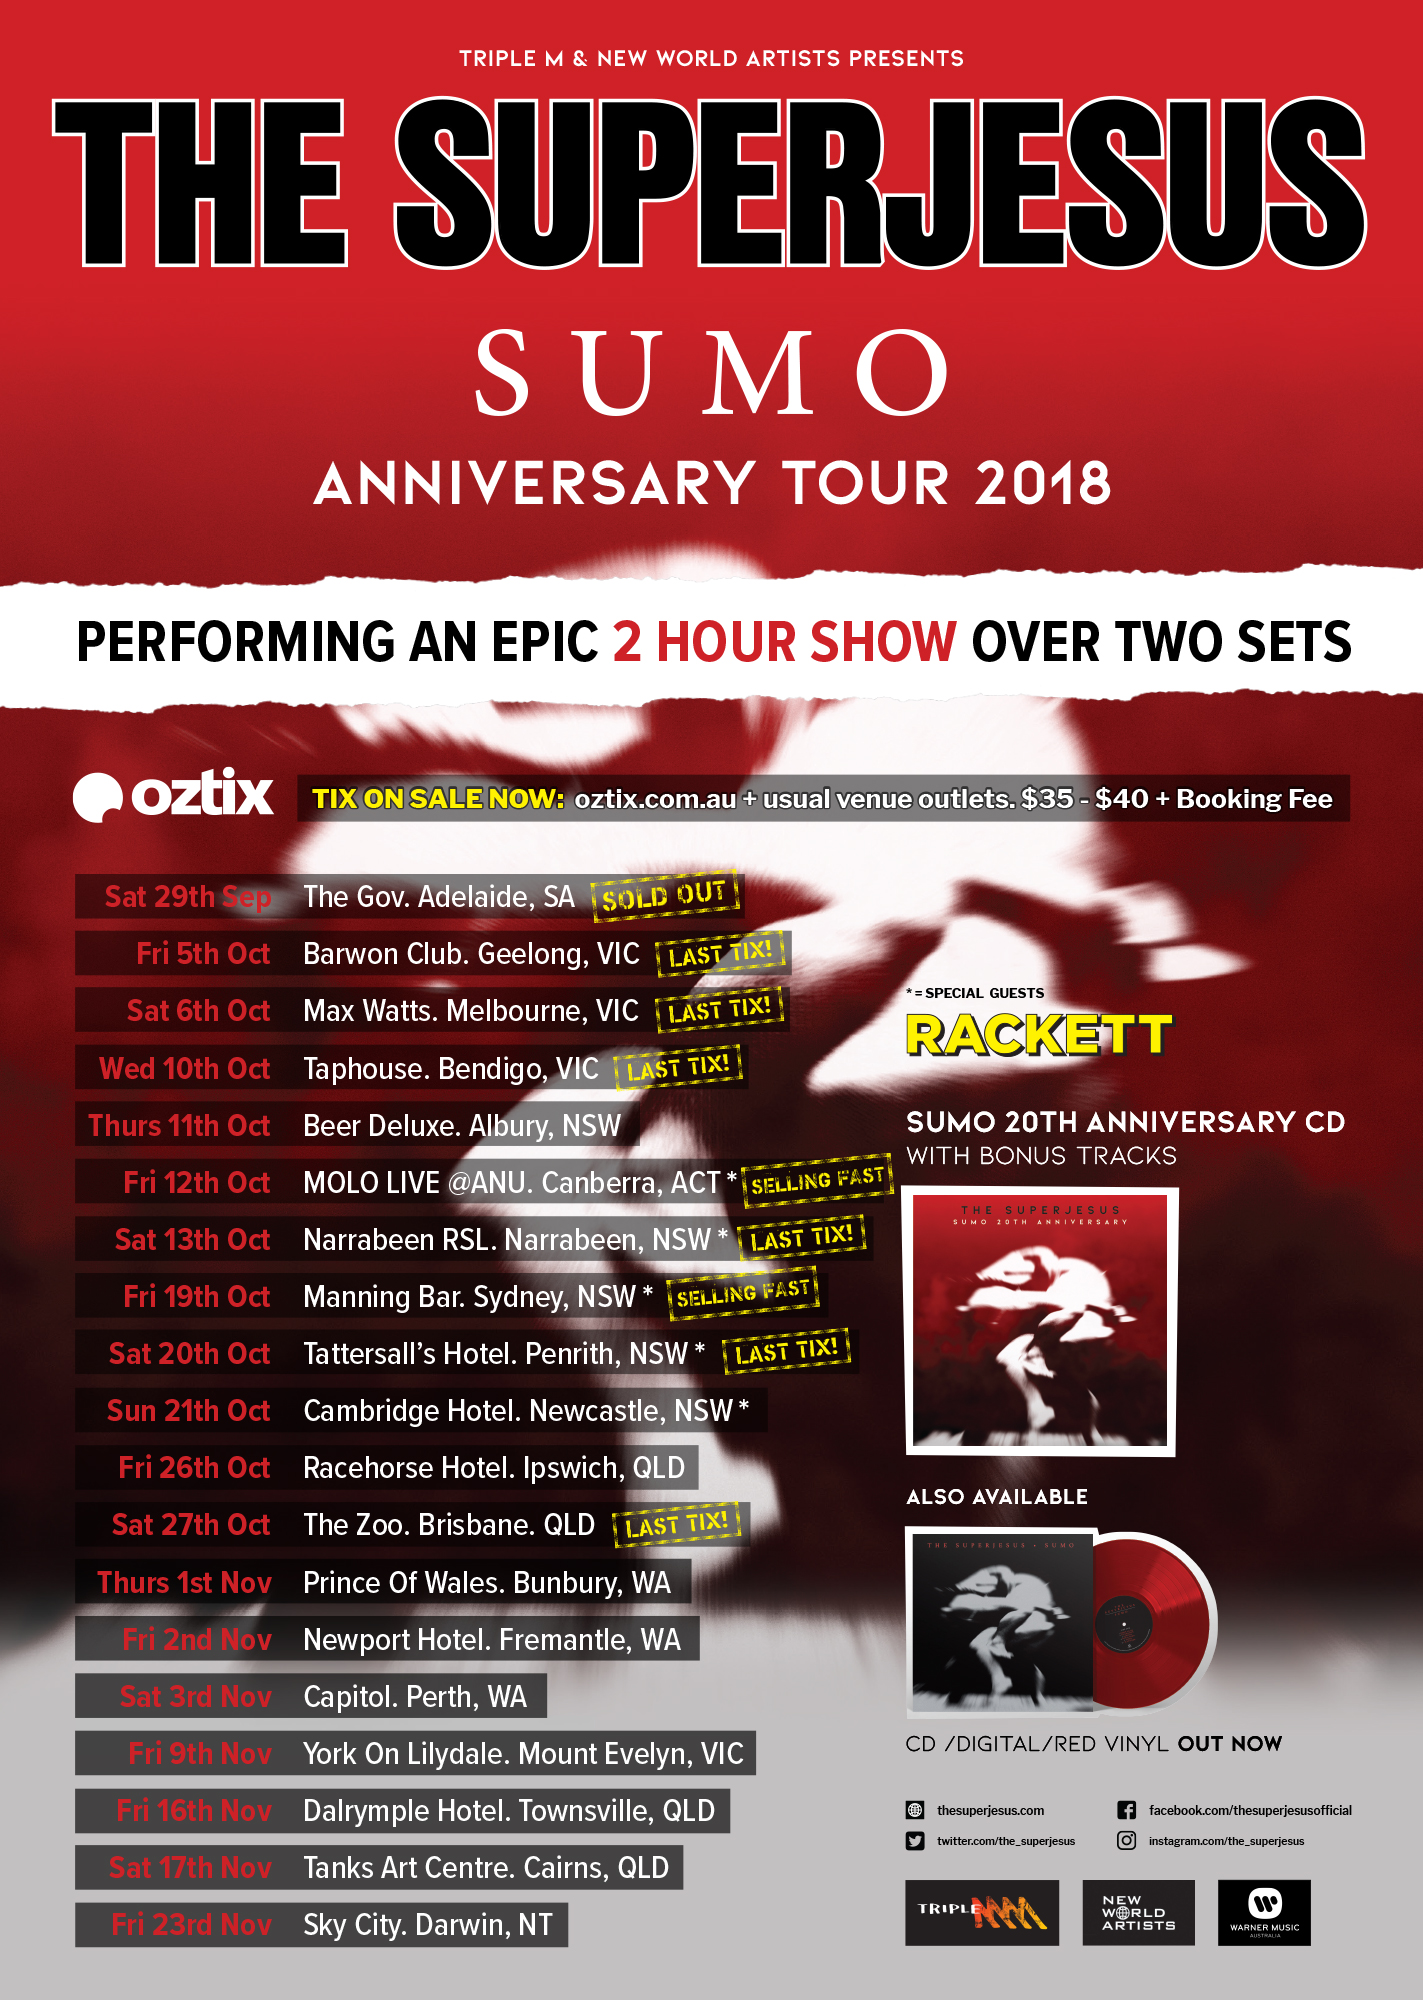 The-Superjesus-A3-Sumo-Tour-ALLSTATES-final